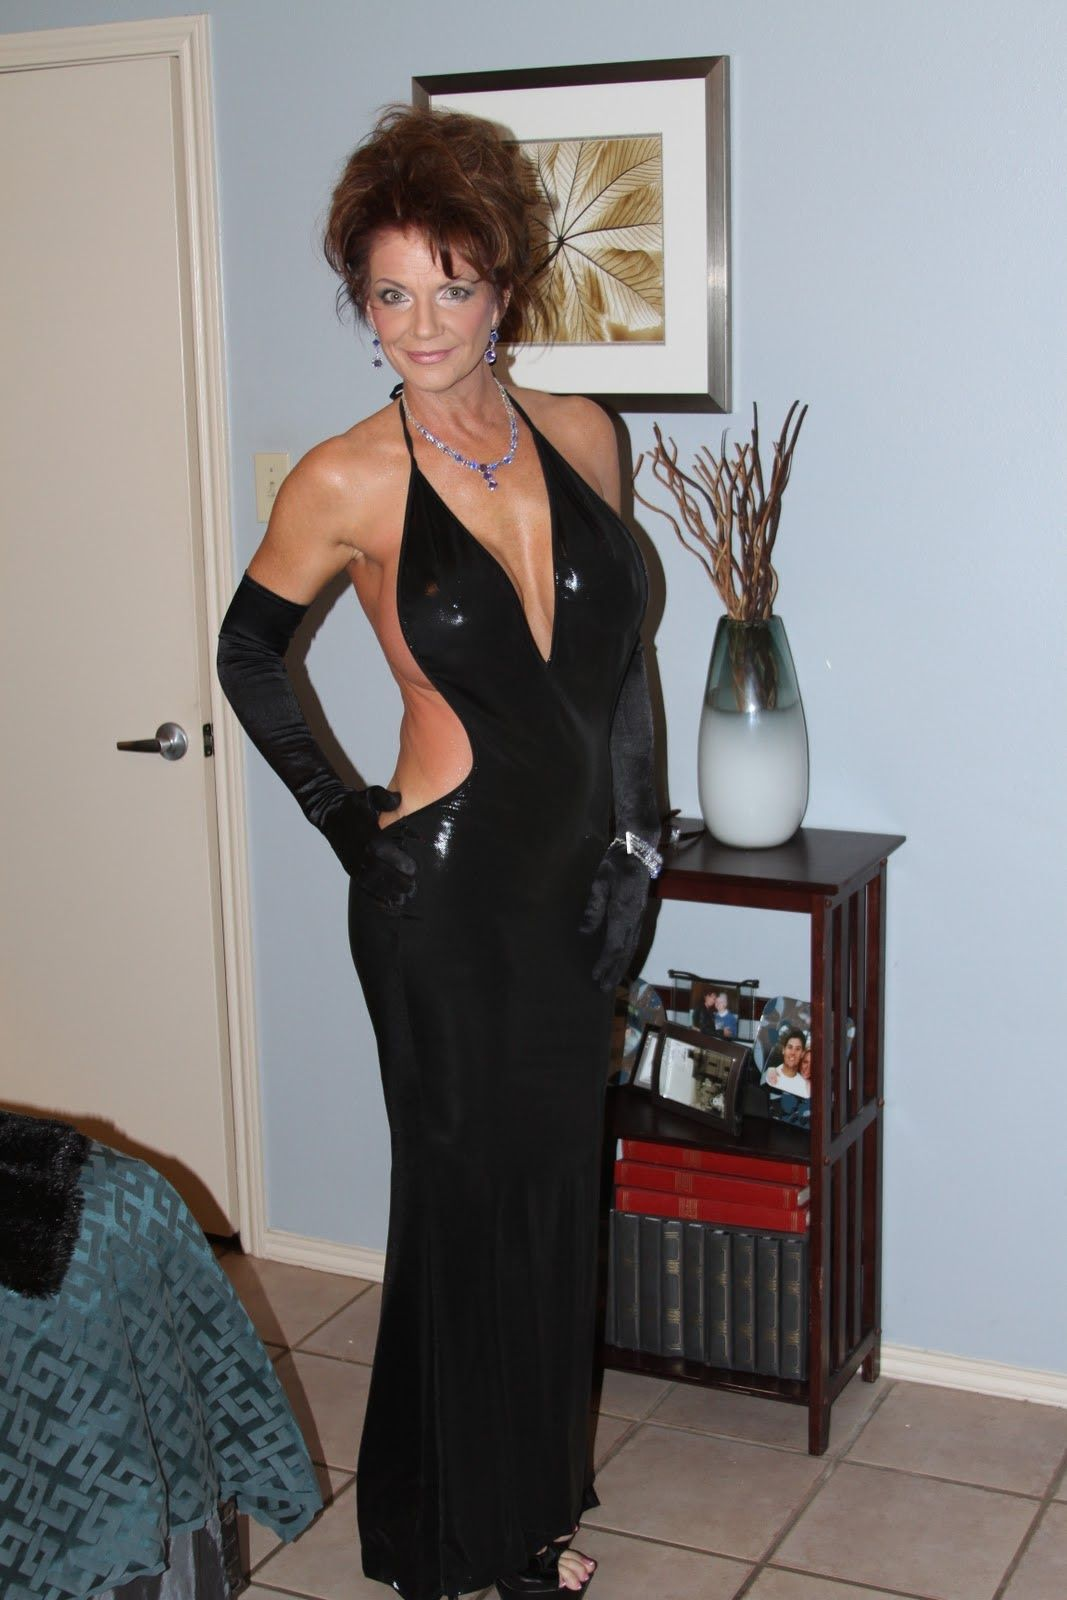 Meet thousands of single Cougars in Edmonton with Mingle2s free personal ads and chat rooms..